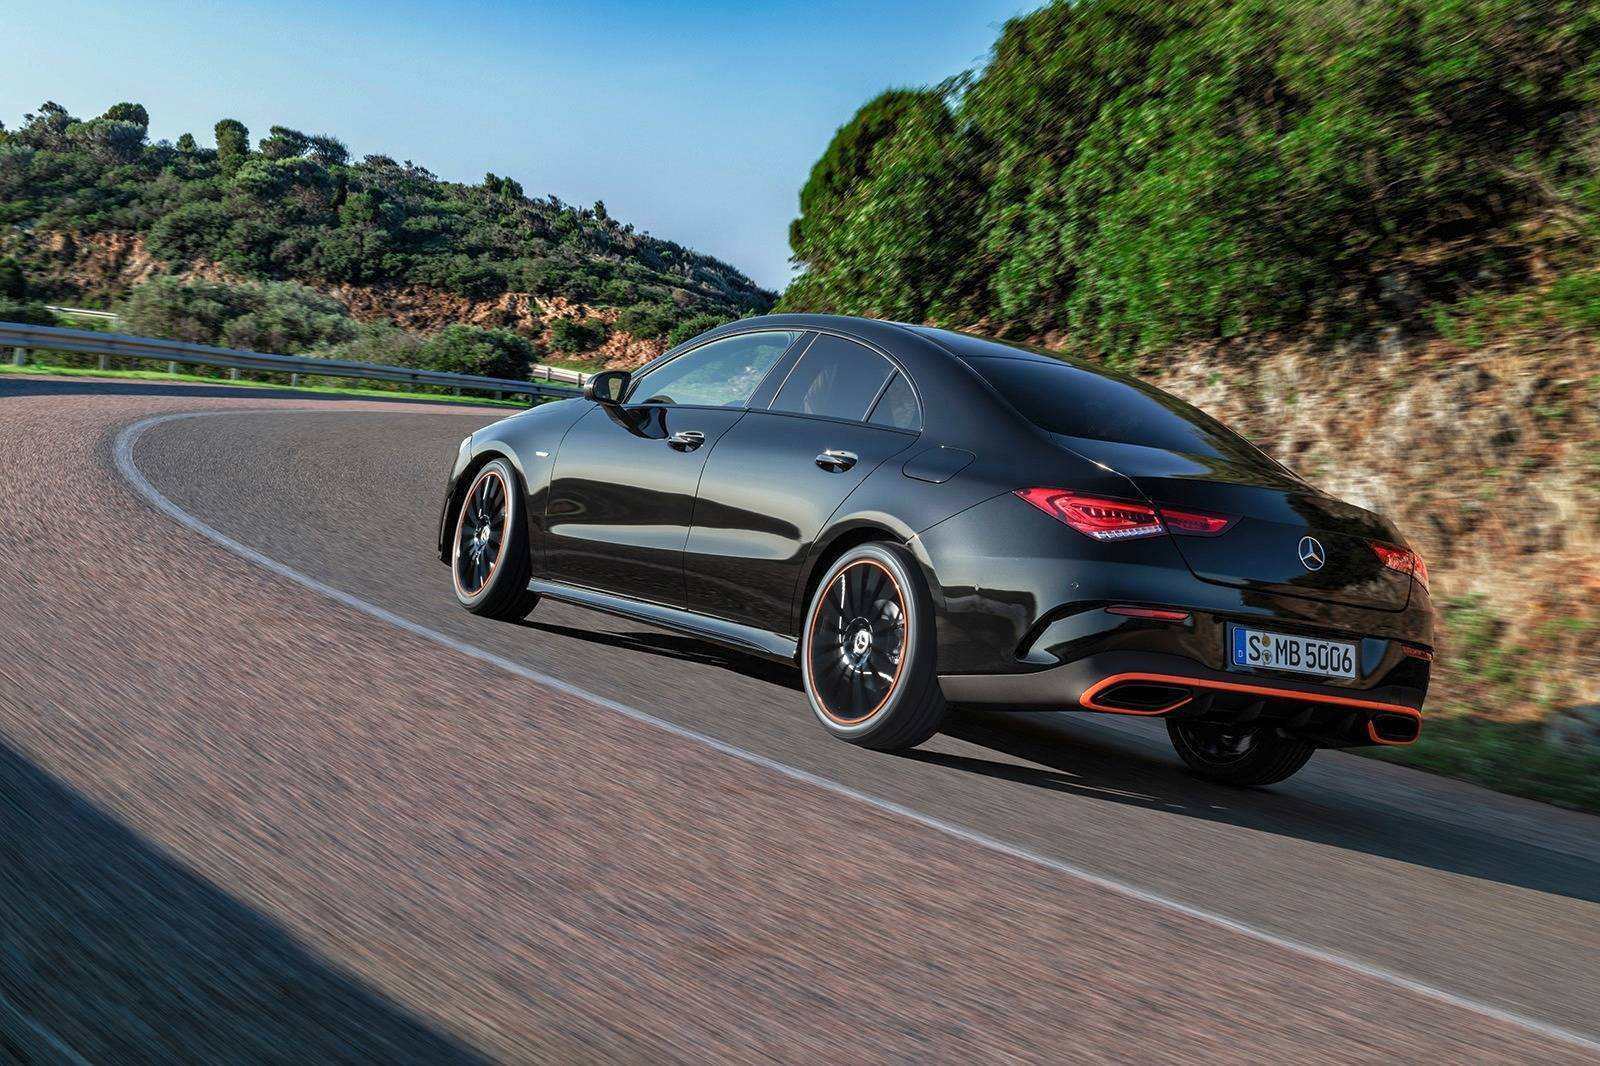 66 The Best 2020 Mercedes CLA 250 Overview